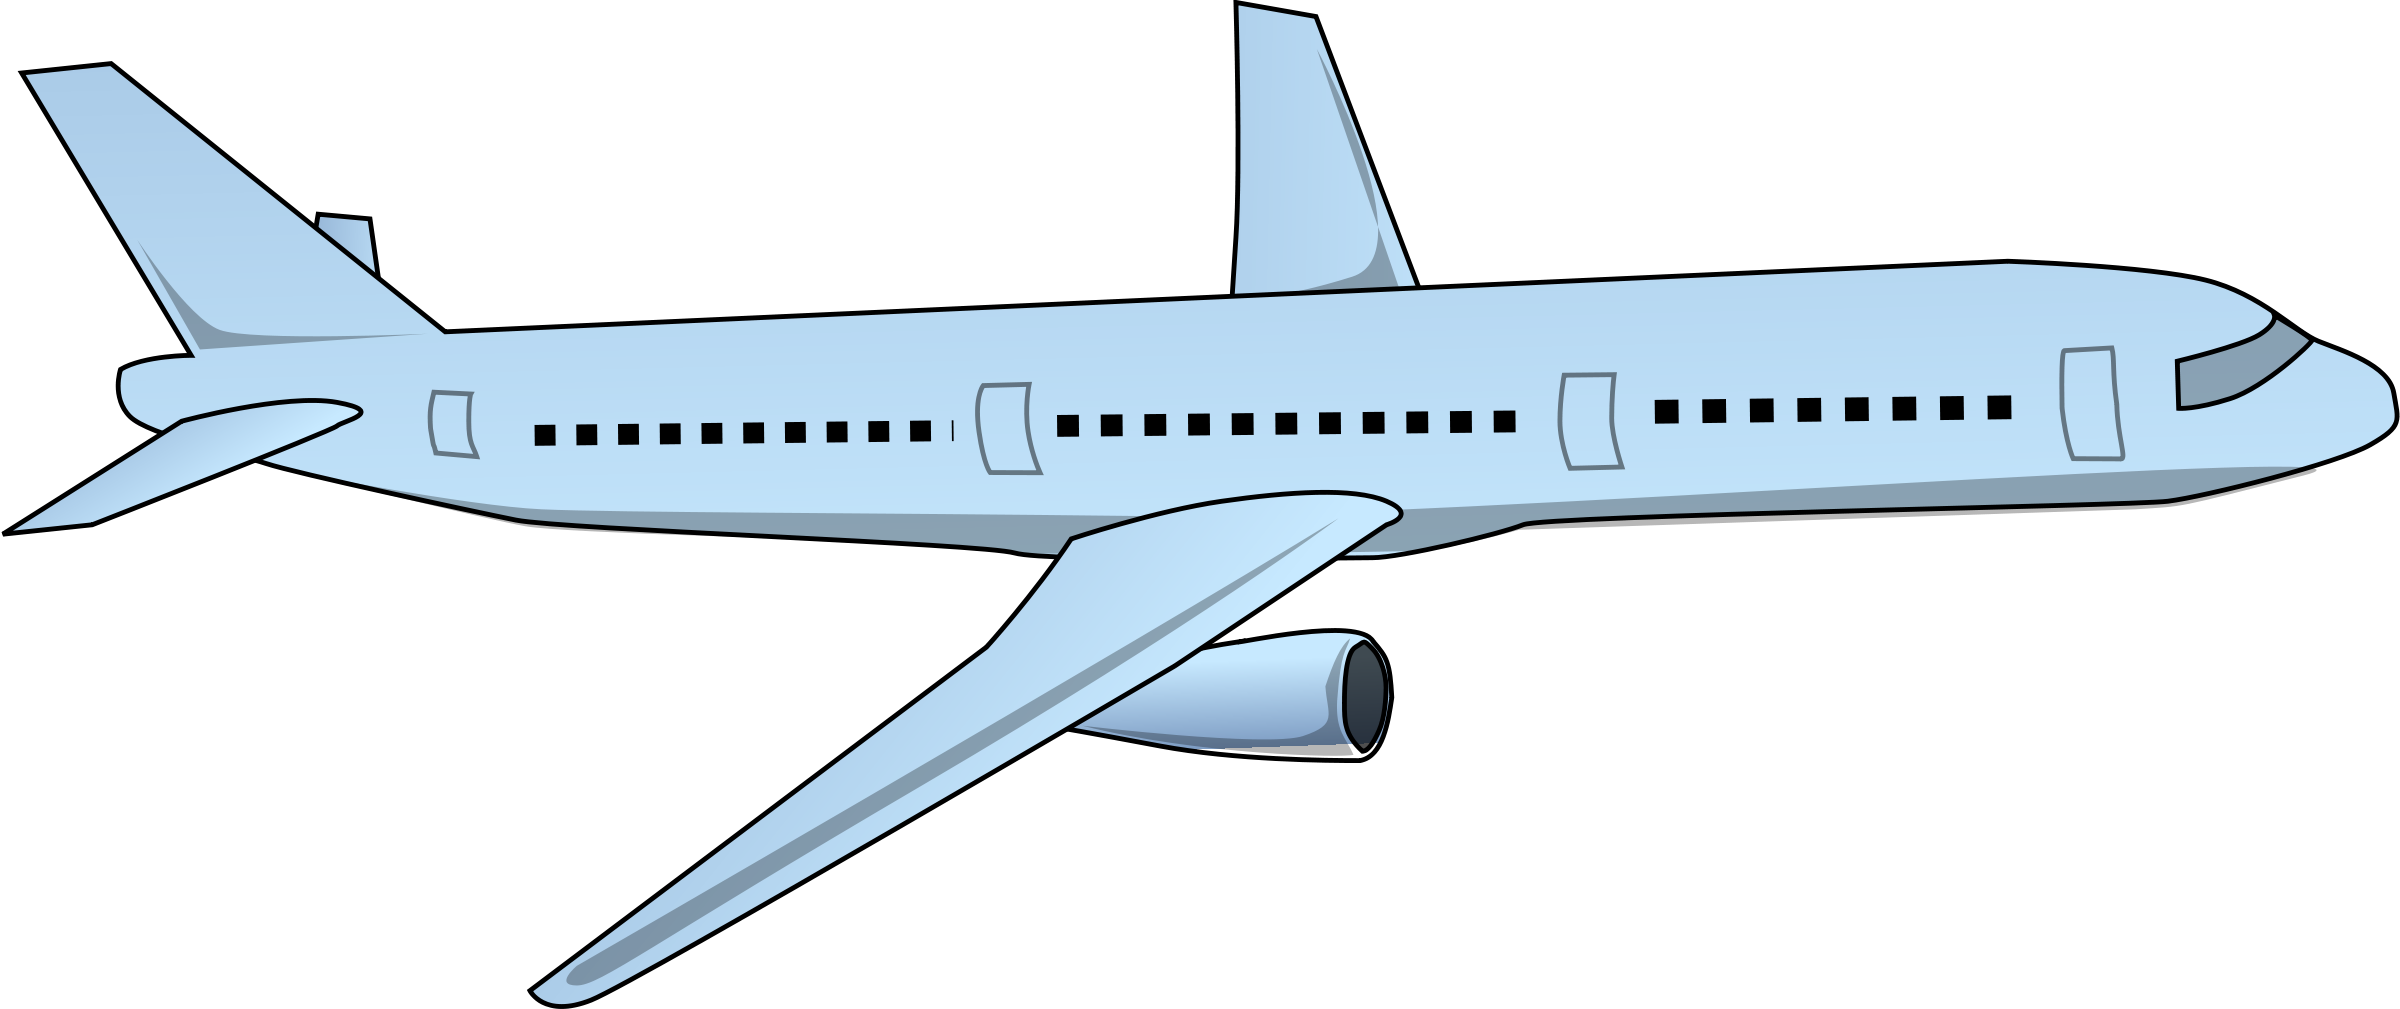 Aircraft vector trail. Airplane clipart no background